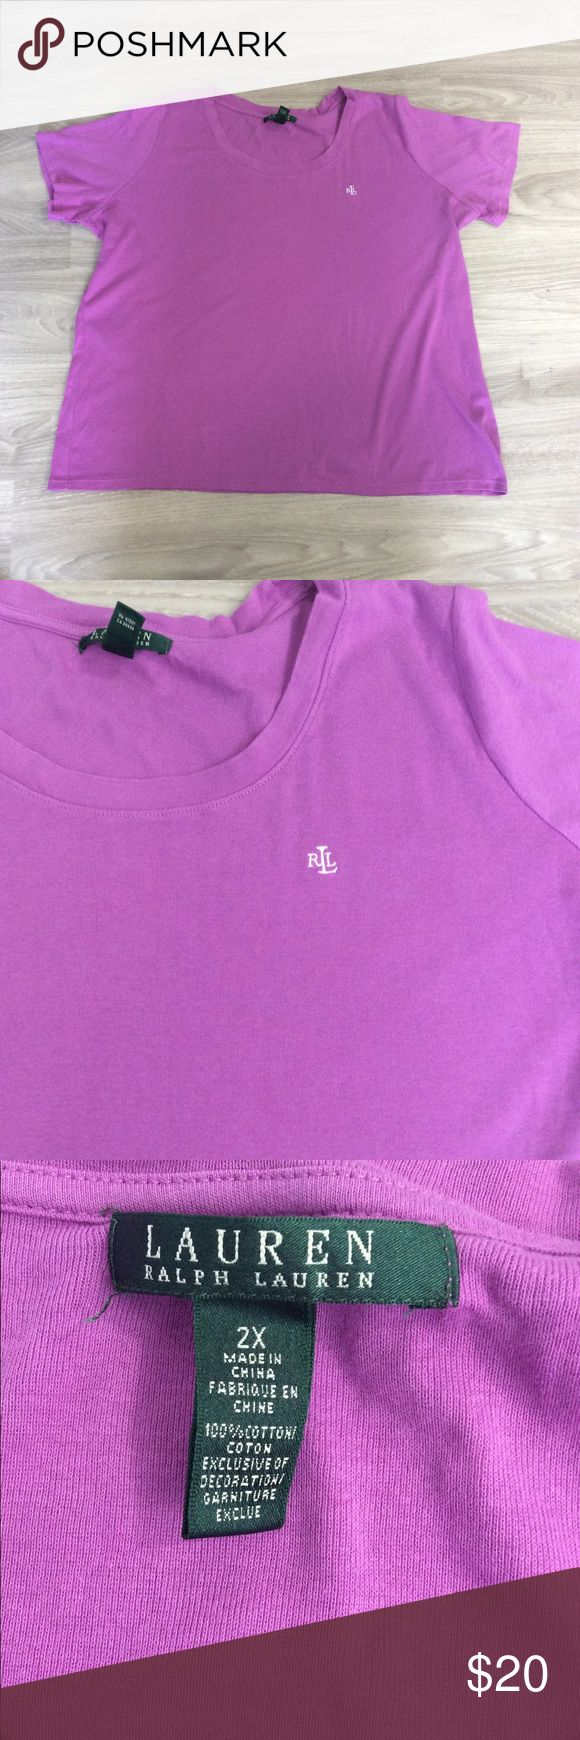 """LRL Lilac Purple Short Sleeve Tee Monogram Size 2X Up for sale is this pretty Lauren Ralph Lauren purple t shirt! This is the perfect pop of color for this summer!  Women's Size 2X Armpit to Armpit 25"""" Shoulder to Hem 27"""" Sleeve 8""""  CONDITION: Great Condition! Please see photos. Lauren Ralph Lauren Tops Tees - Short Sleeve"""